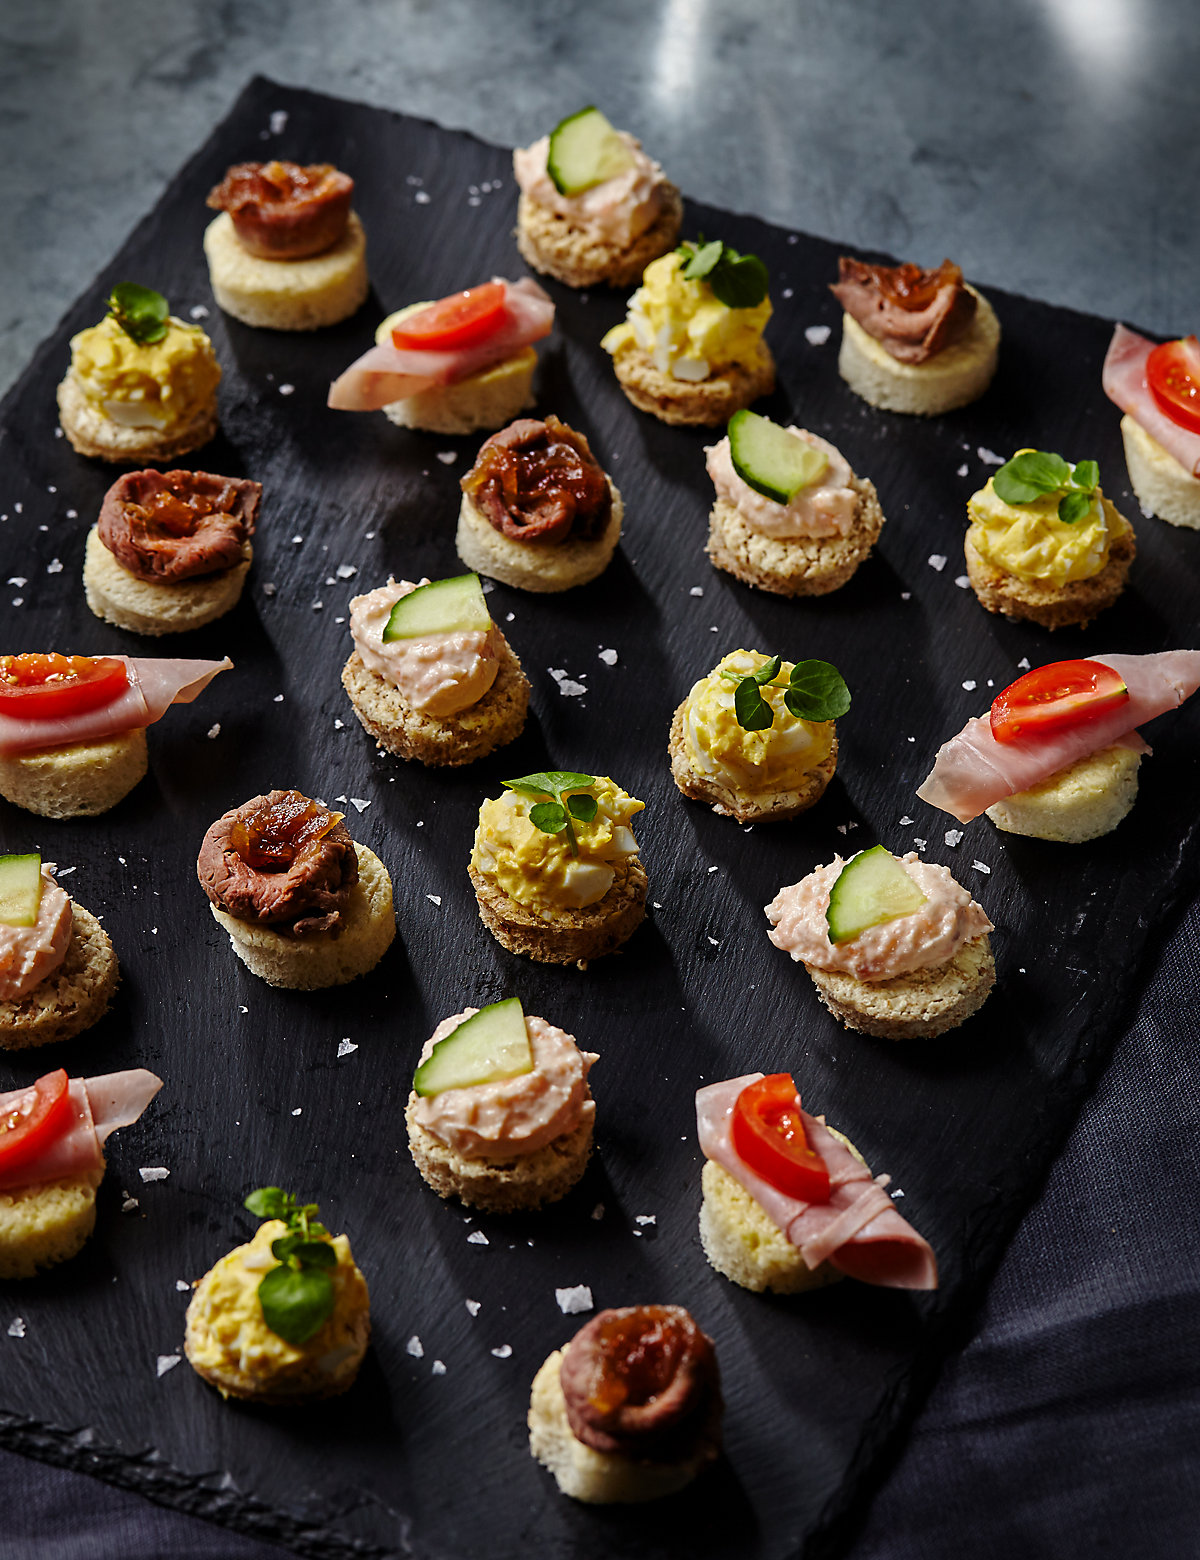 Marks and spencer 24 mini topped canap platter for Canape serving platters